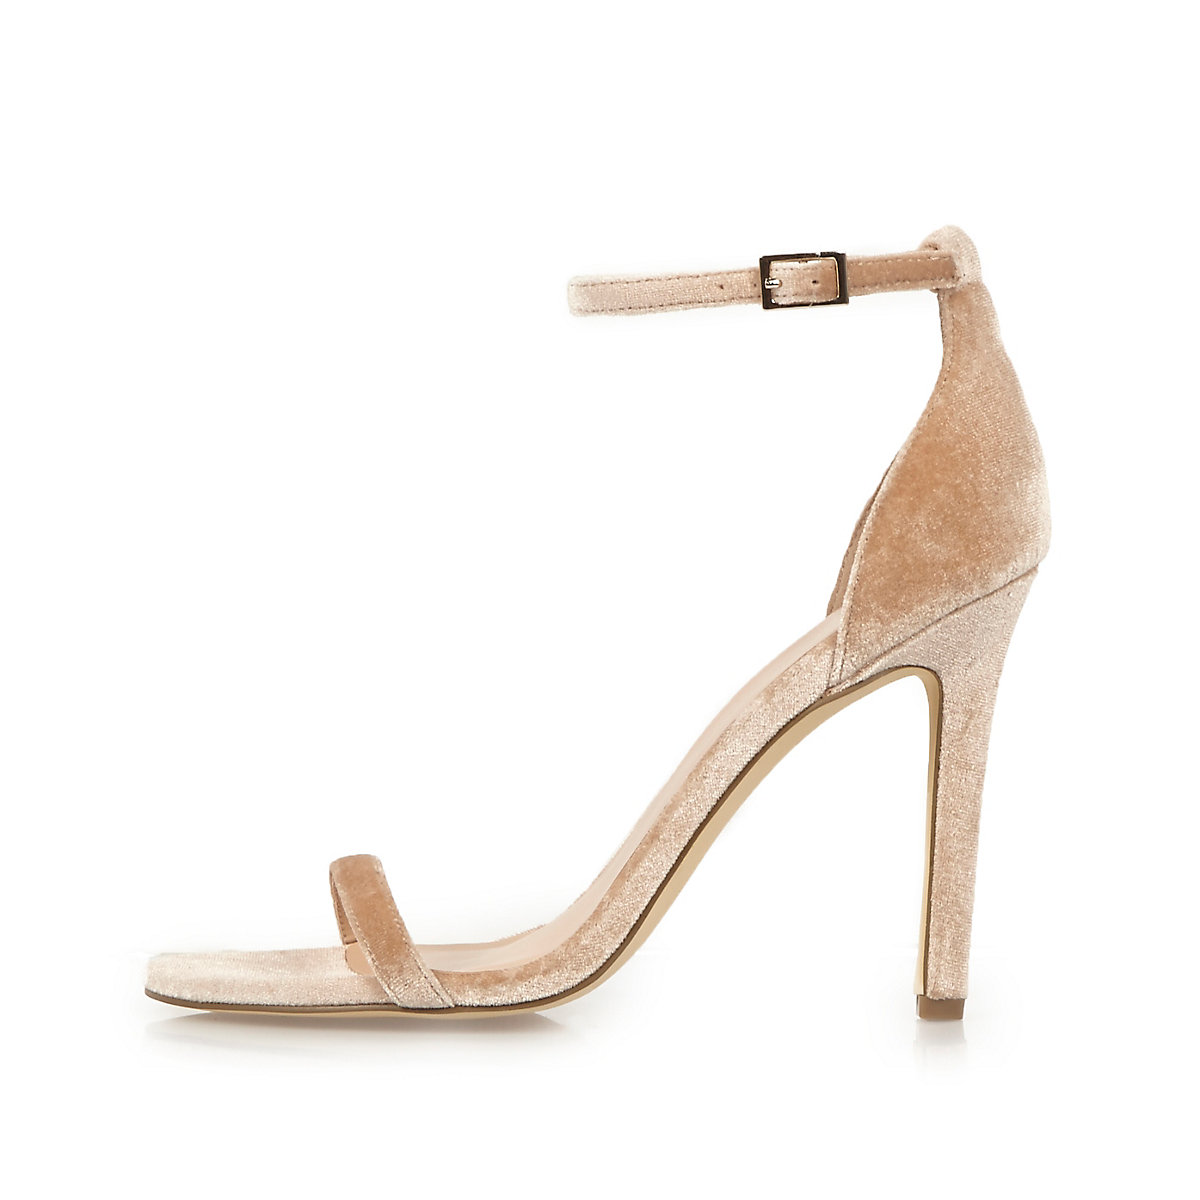 d021022ea785 Nude velvet barely there heeled sandals - Sandals - Shoes   Boots - women